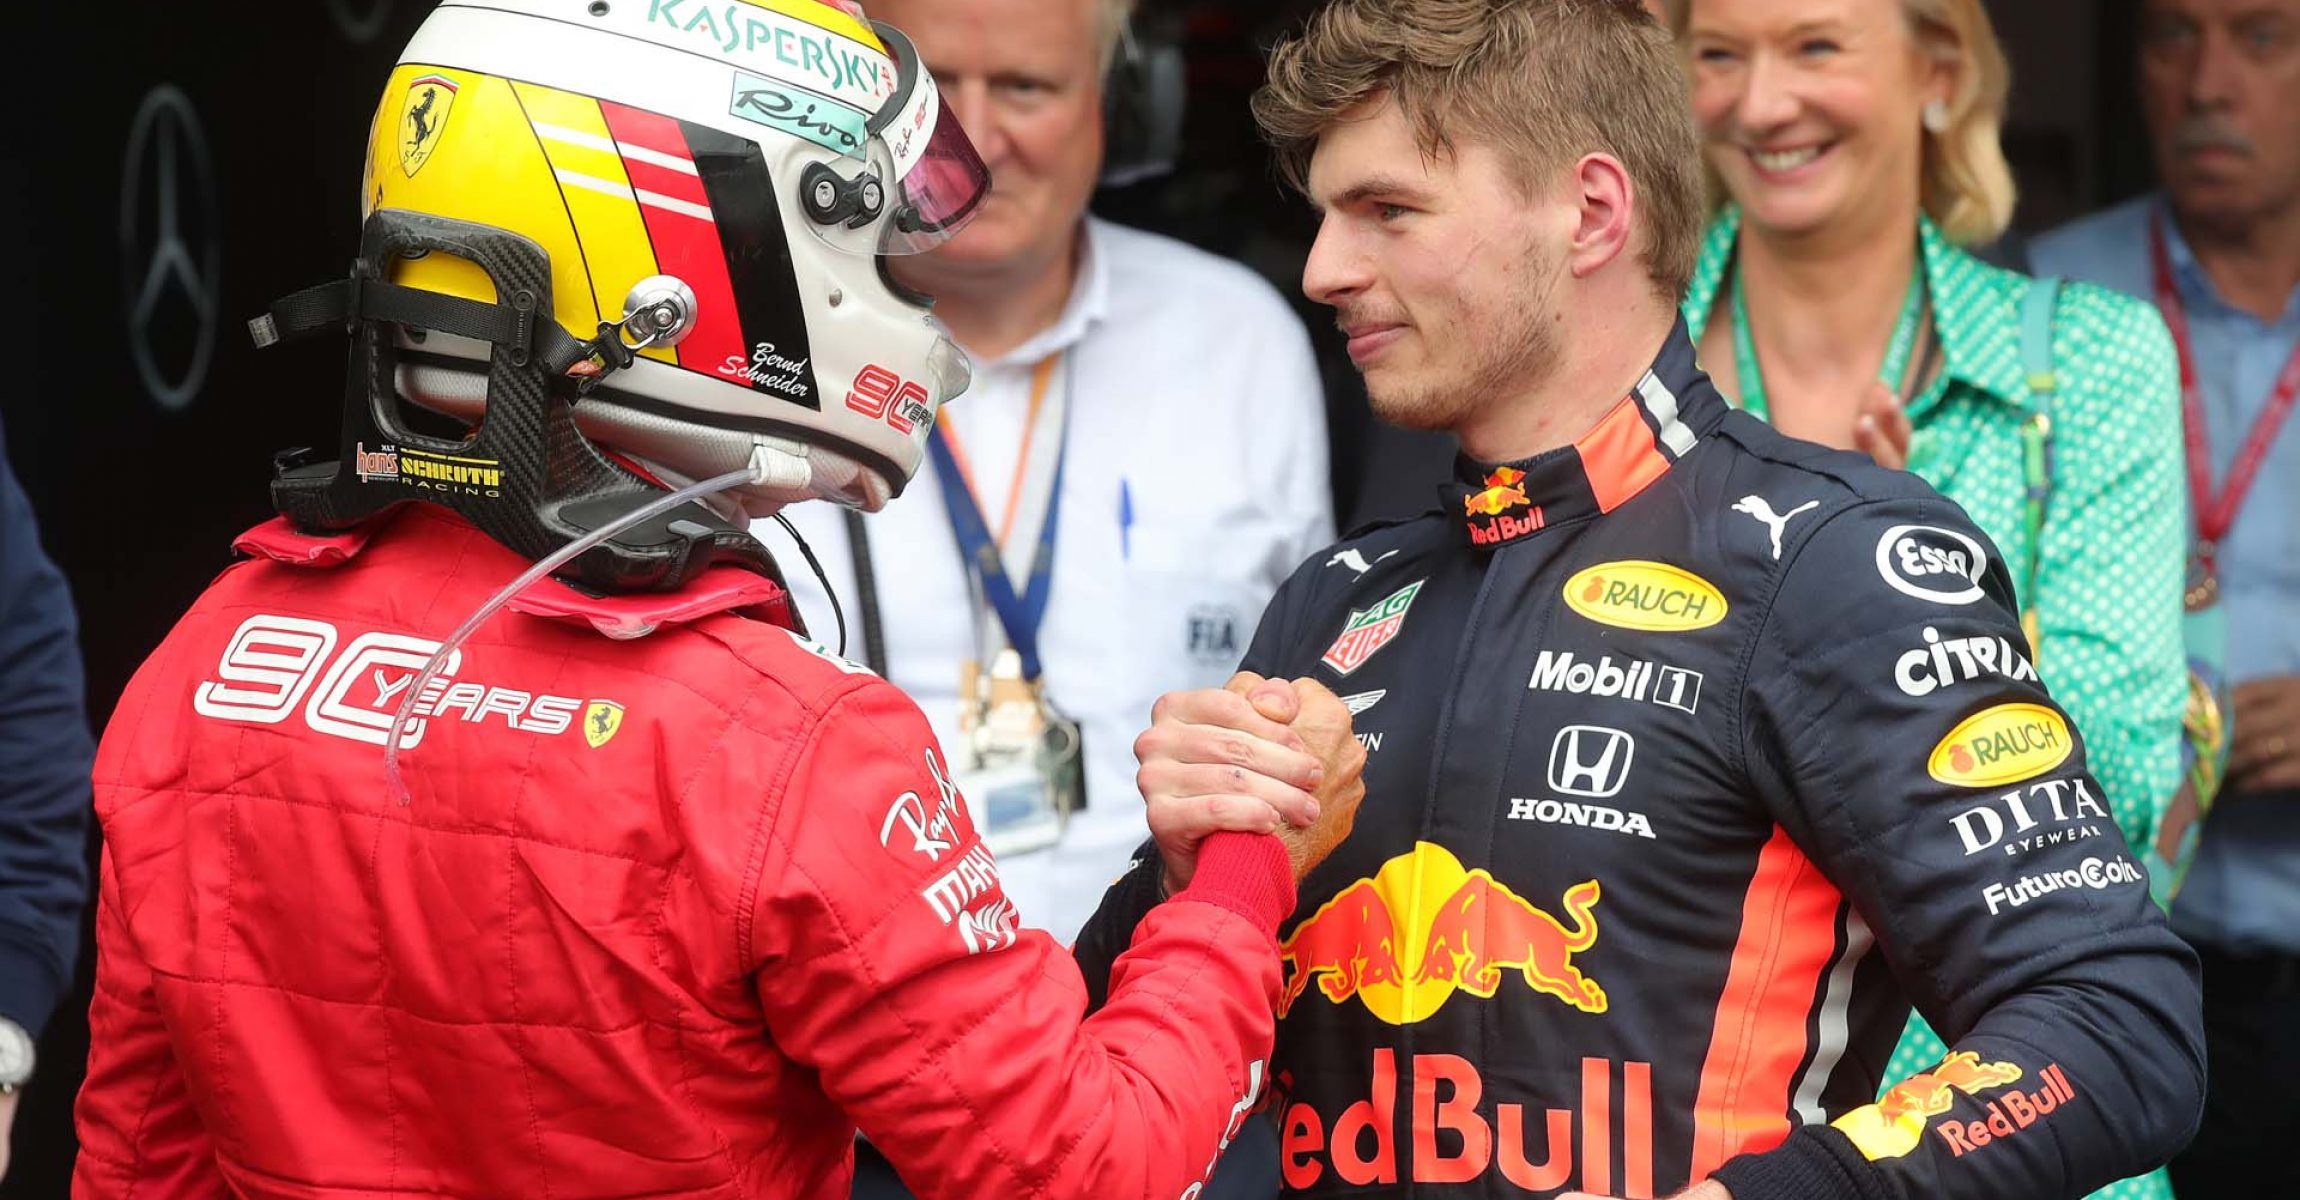 HOCKENHEIM, GERMANY - JULY 28: Race winner Max Verstappen of Netherlands and Red Bull Racing and second placed Sebastian Vettel of Germany and Ferrari celebrate in parc ferme during the F1 Grand Prix of Germany at Hockenheimring on July 28, 2019 in Hockenheim, Germany. (Photo by Alexander Hassenstein/Getty Images) // Getty Images / Red Bull Content Pool  // AP-213AK55FD2111 // Usage for editorial use only // Please go to www.redbullcontentpool.com for further information. //